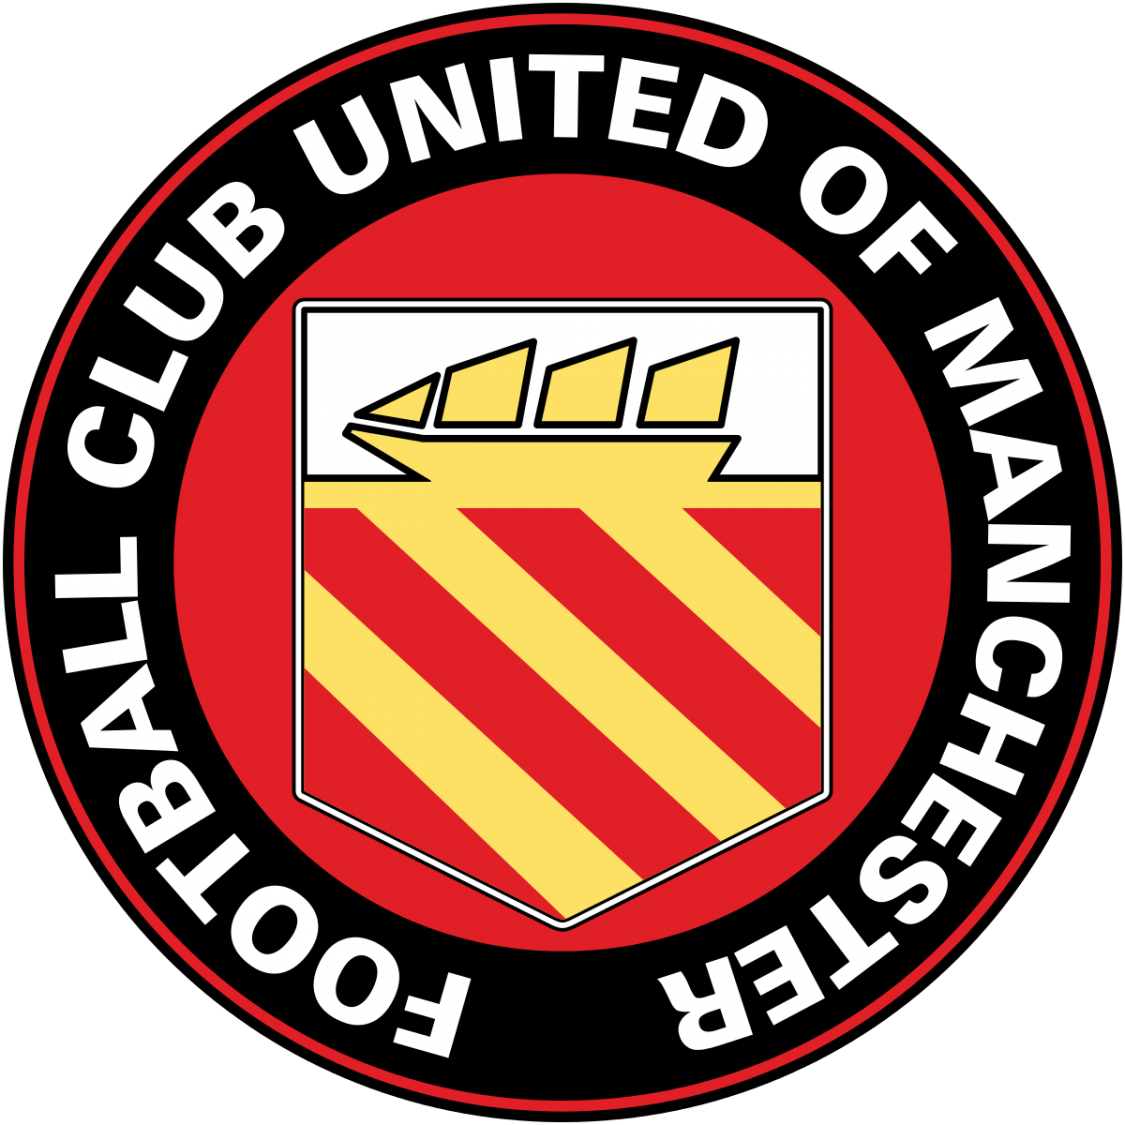 1200px-FC_United_of_Manchester_crest_svg.thumb.png.59232ce9b194ca139870f173d9e72822.png